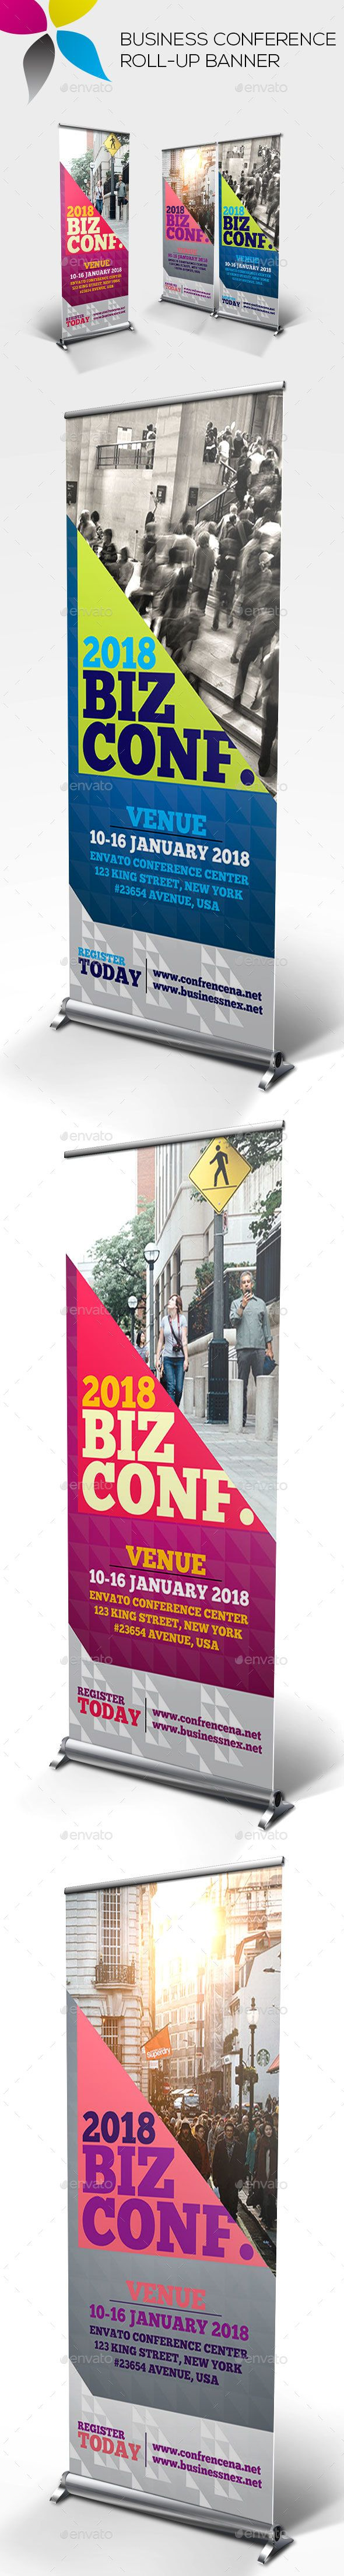 Business Conference Roll-up Banner Design Template - Signage Ads Banner Print Te...